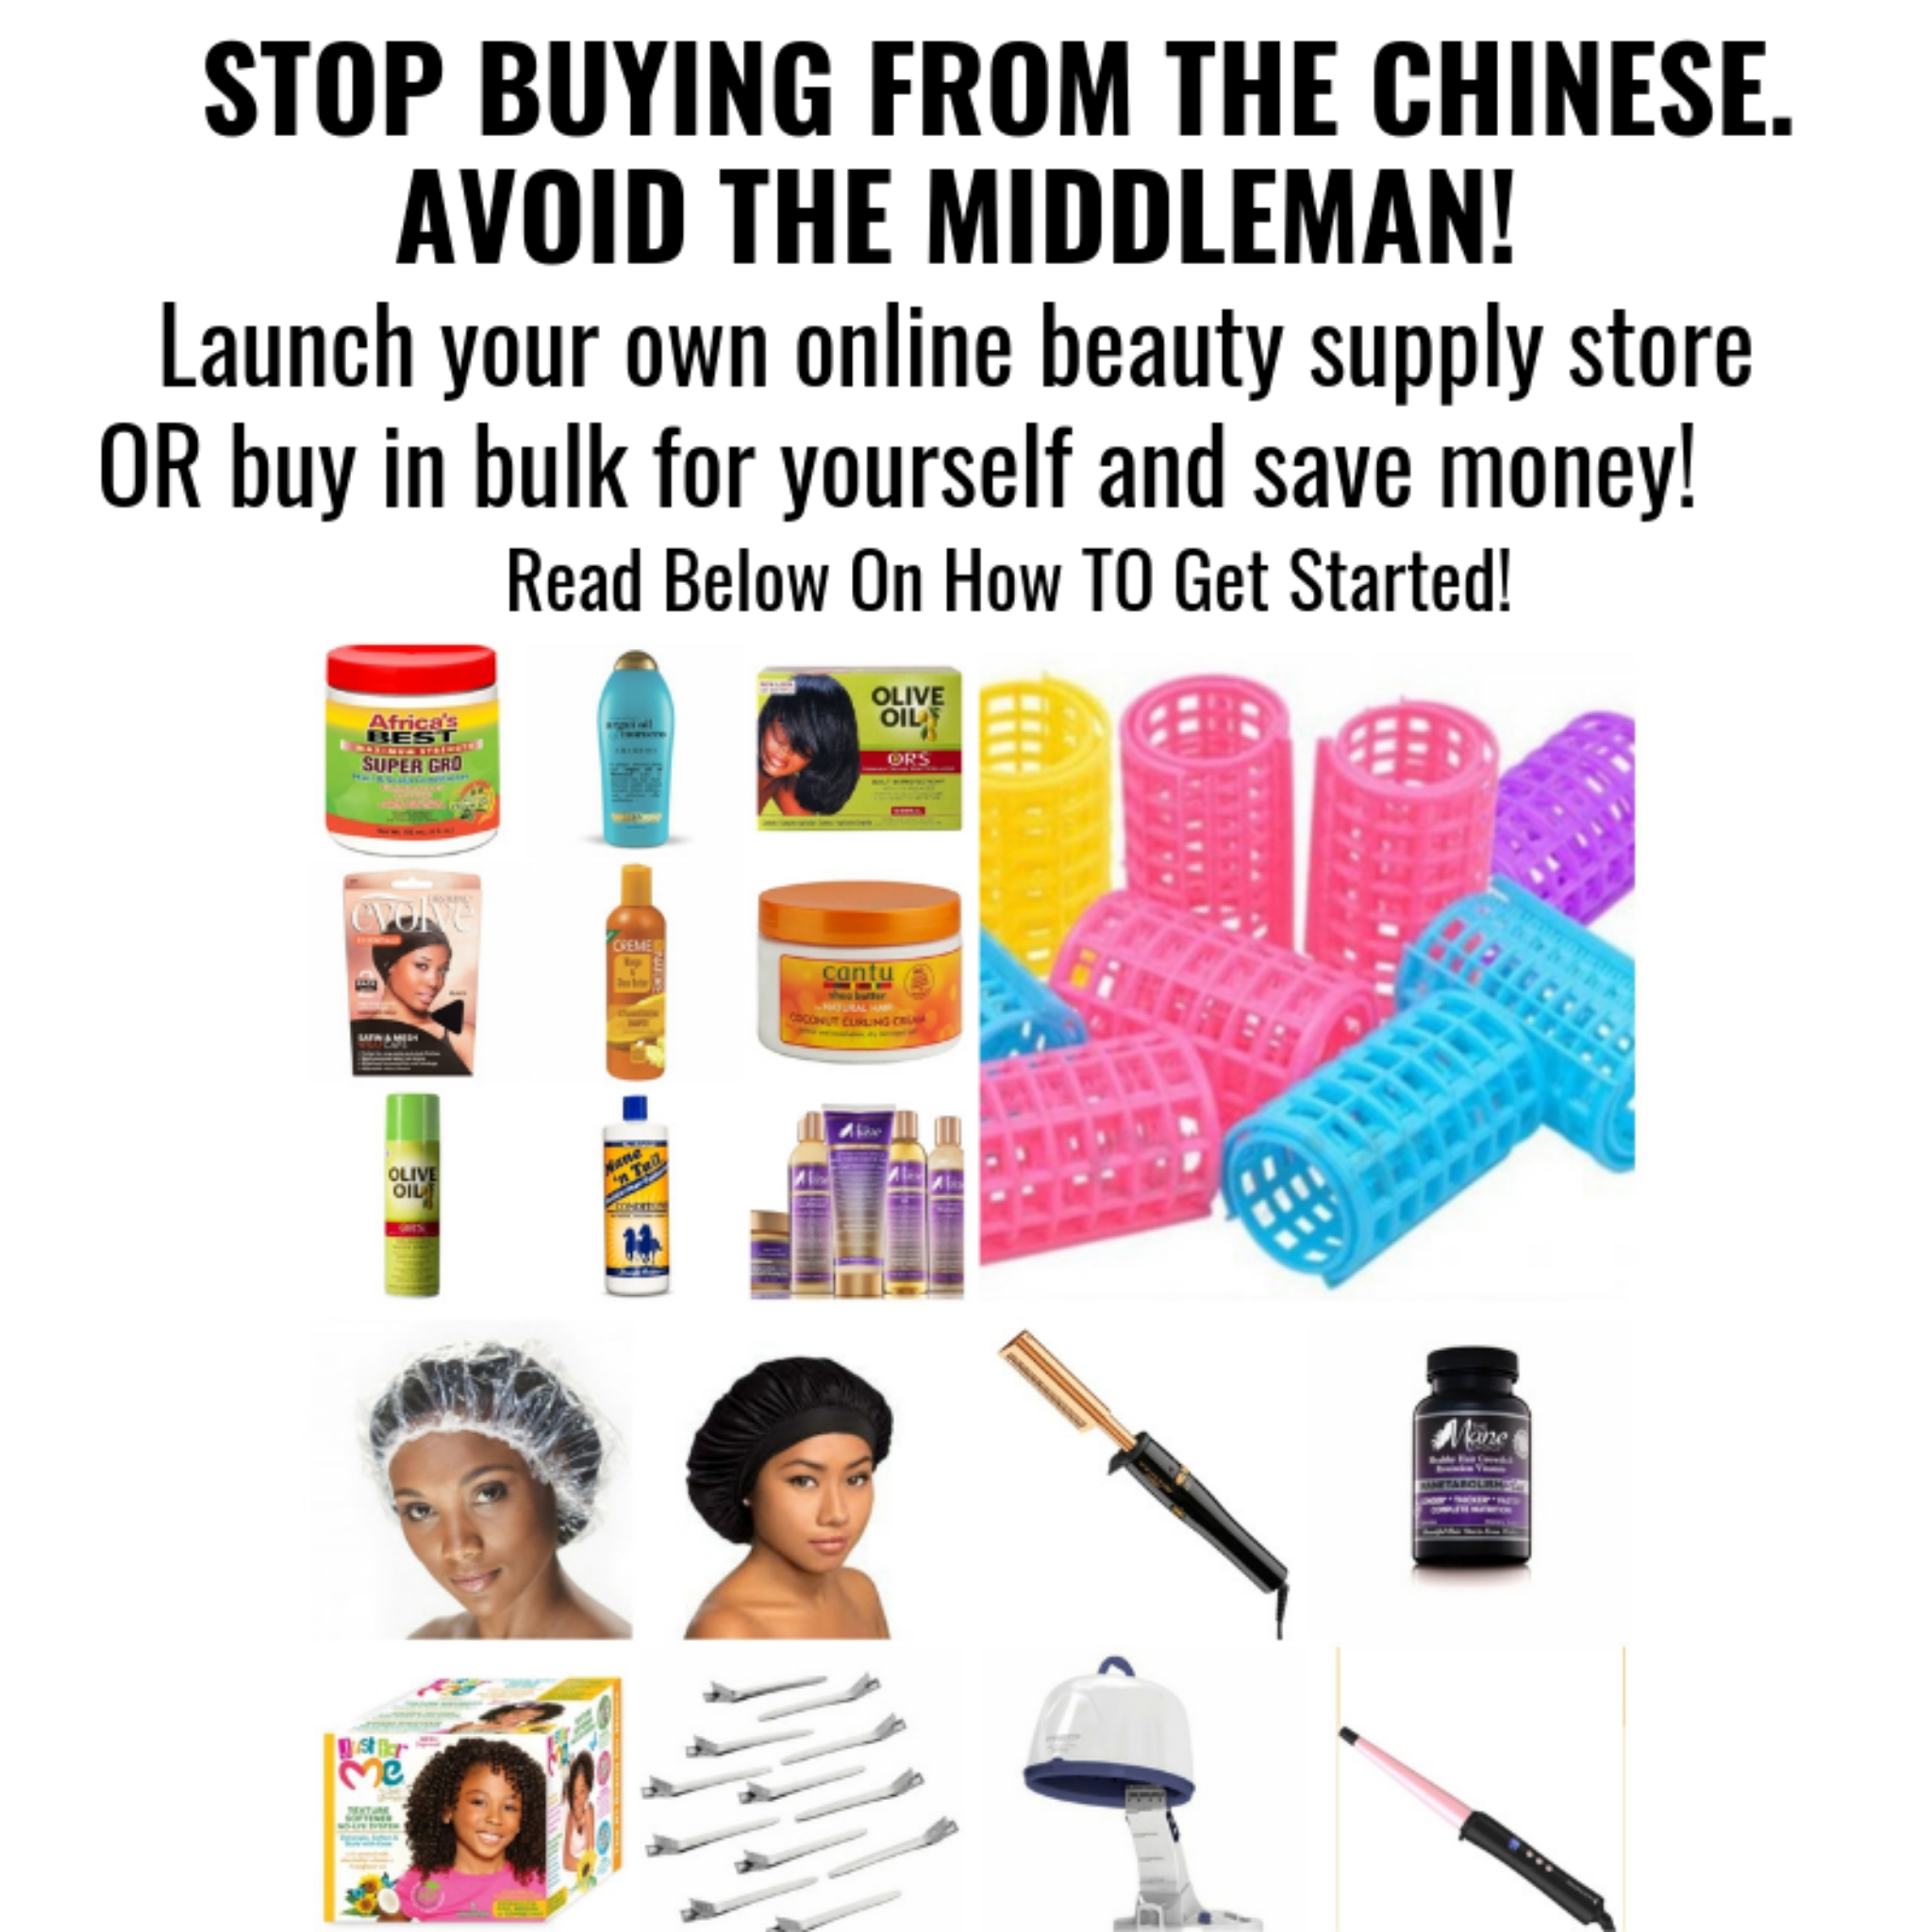 Wholesale Beauty Vendors Launch Online Beauty Supply Store